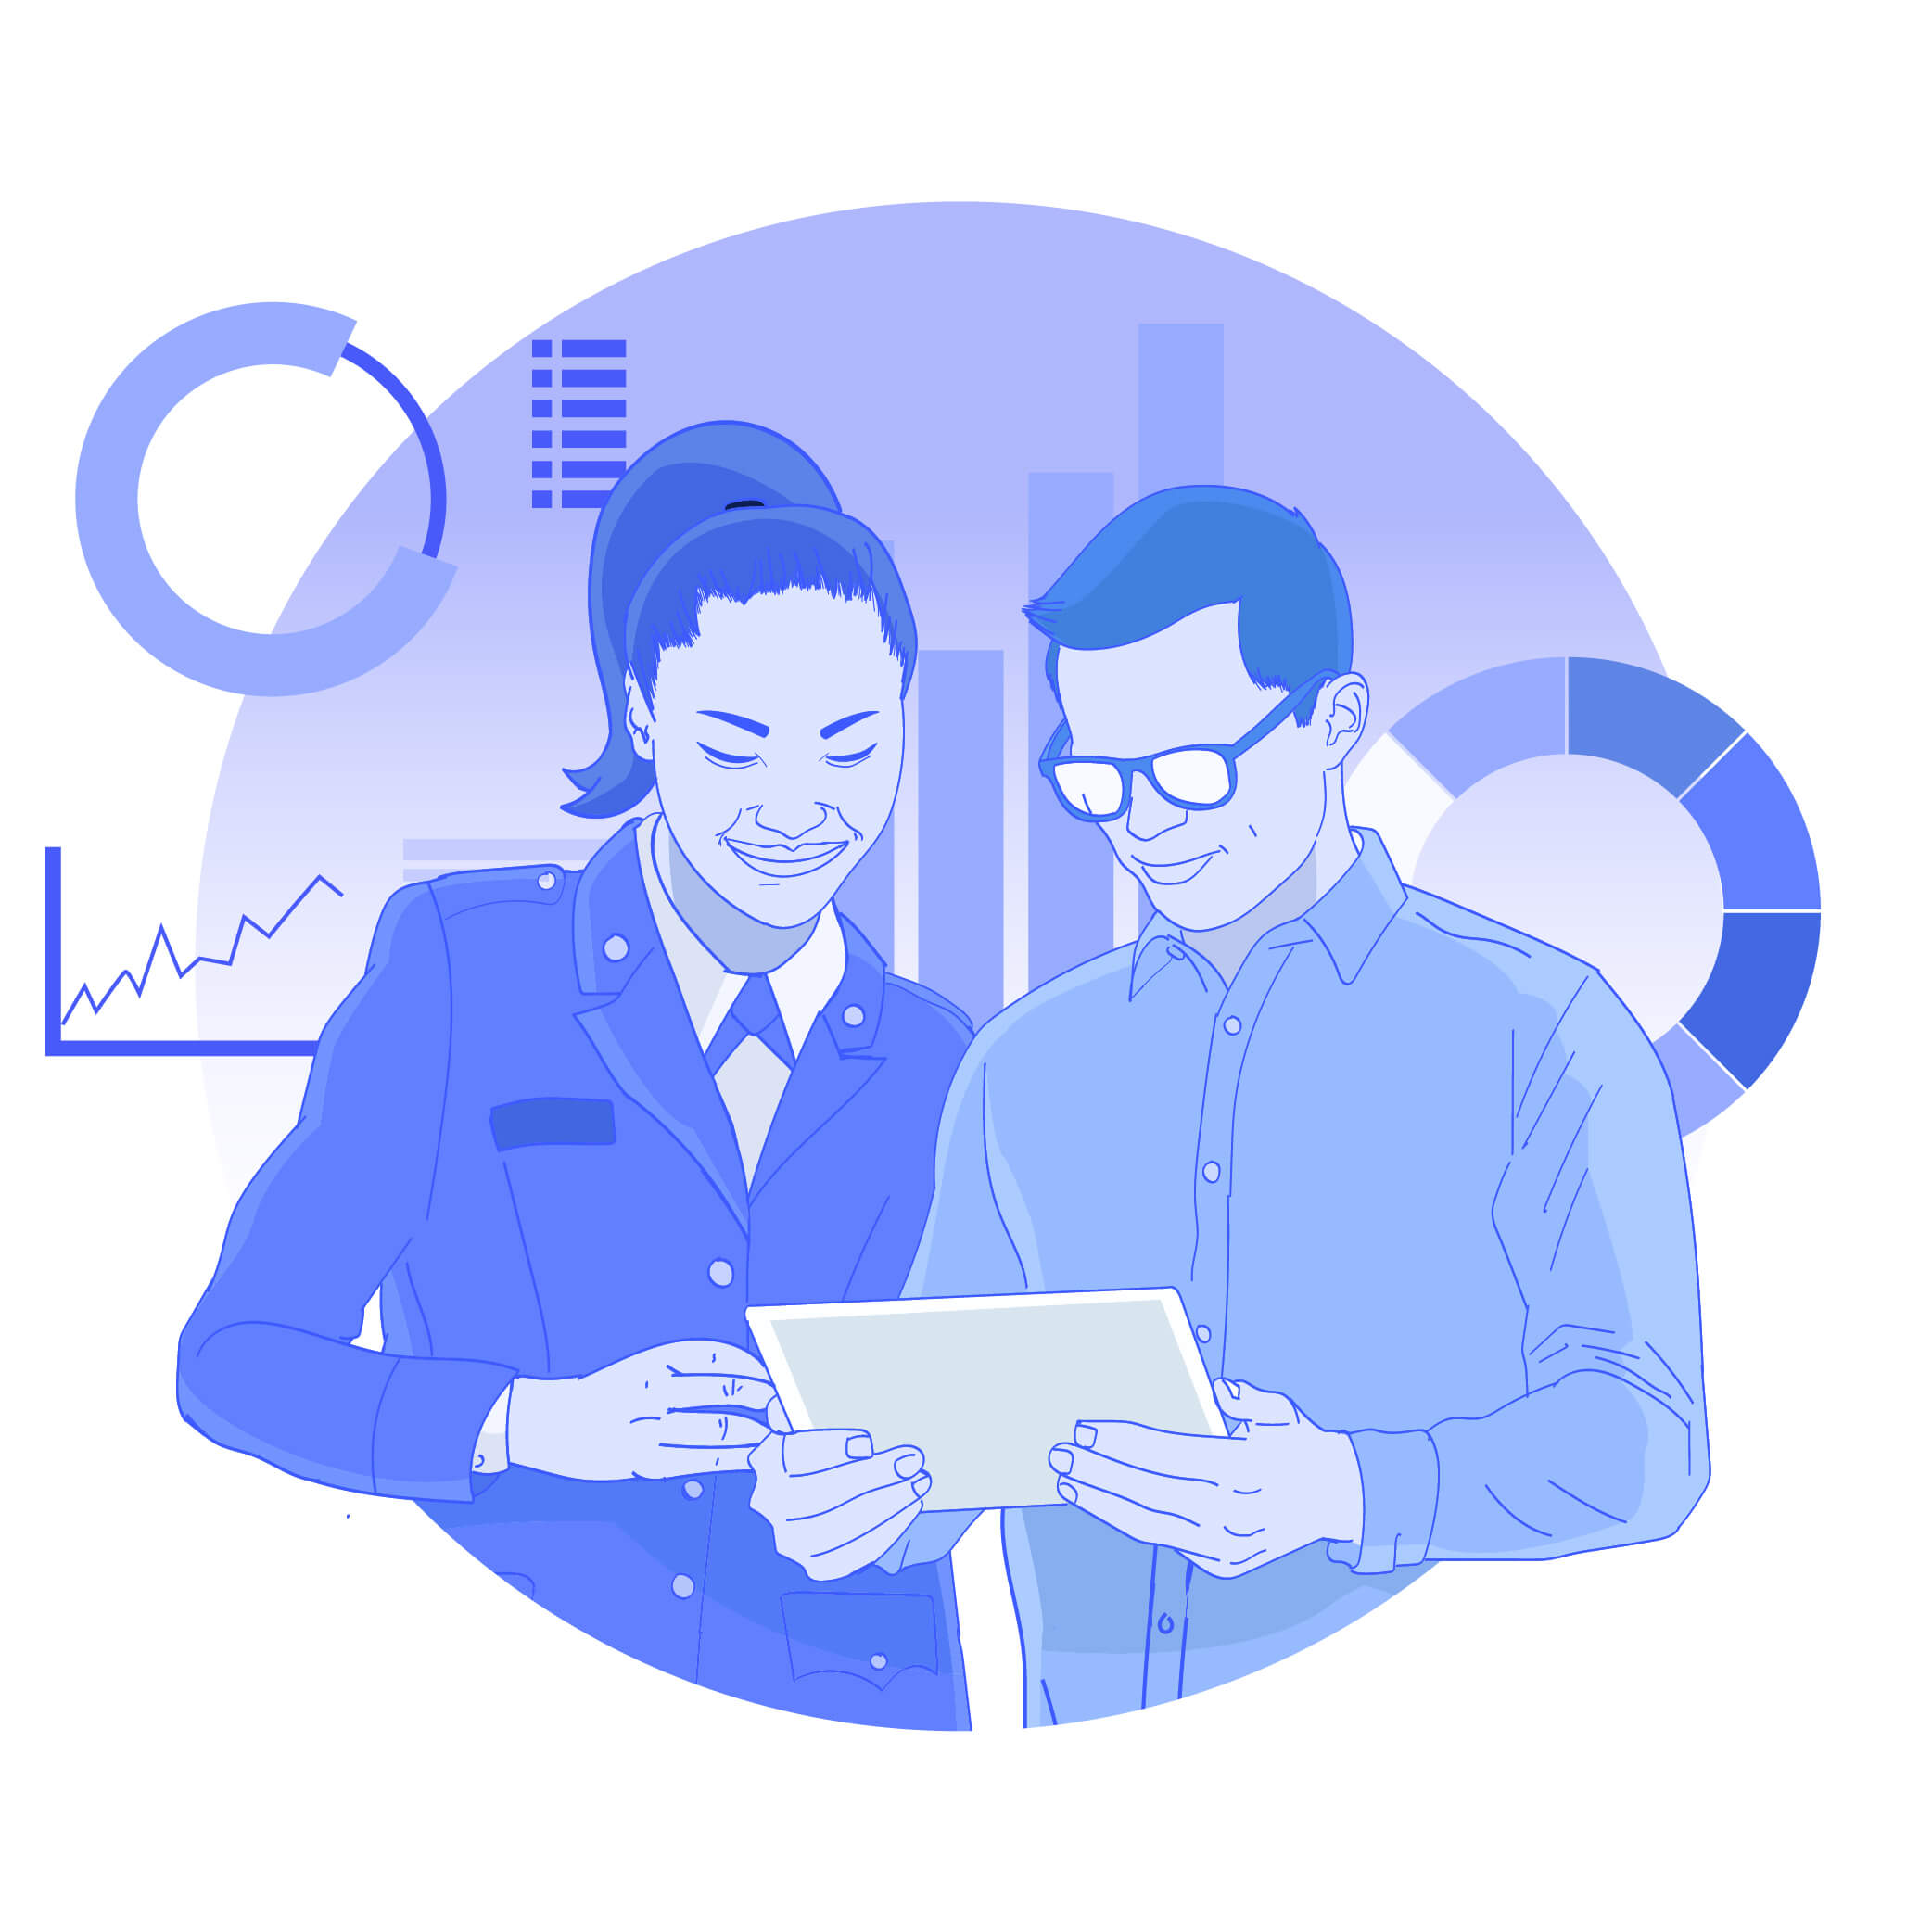 Capabilities graphic show two people looking at data